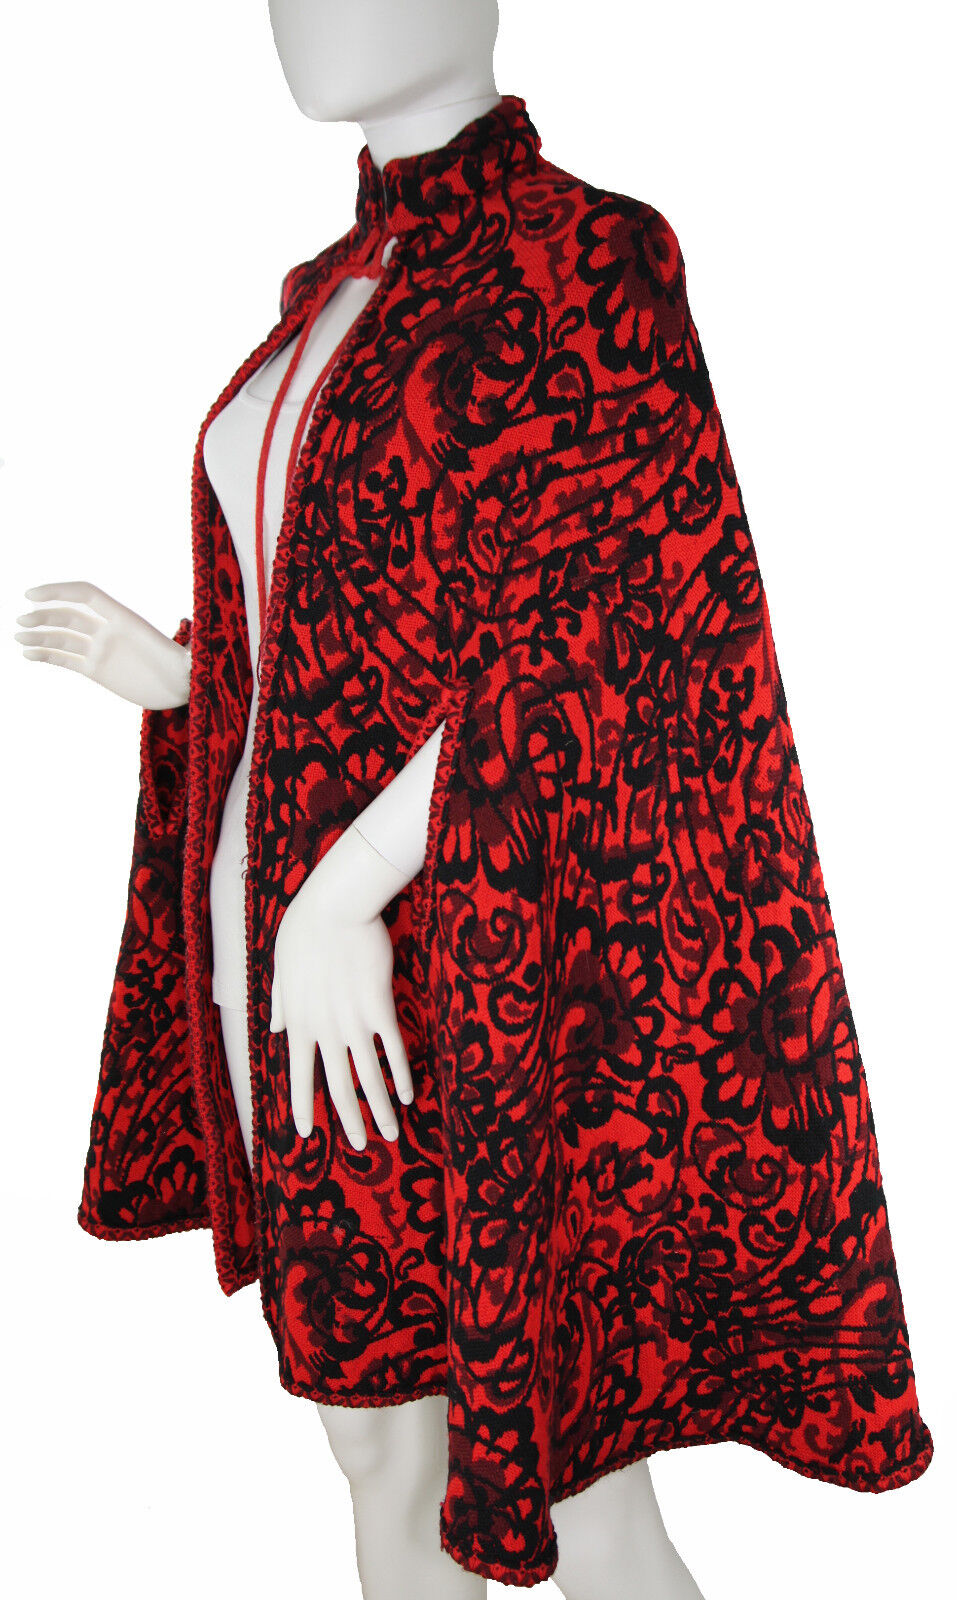 9b47dfaed Vintage Red Woven Floral Paisley Tapestry Cape c. 1960's-1970's, O S Nordic  Wool nriqjl10959-Coats,Jackets & Waistcoats